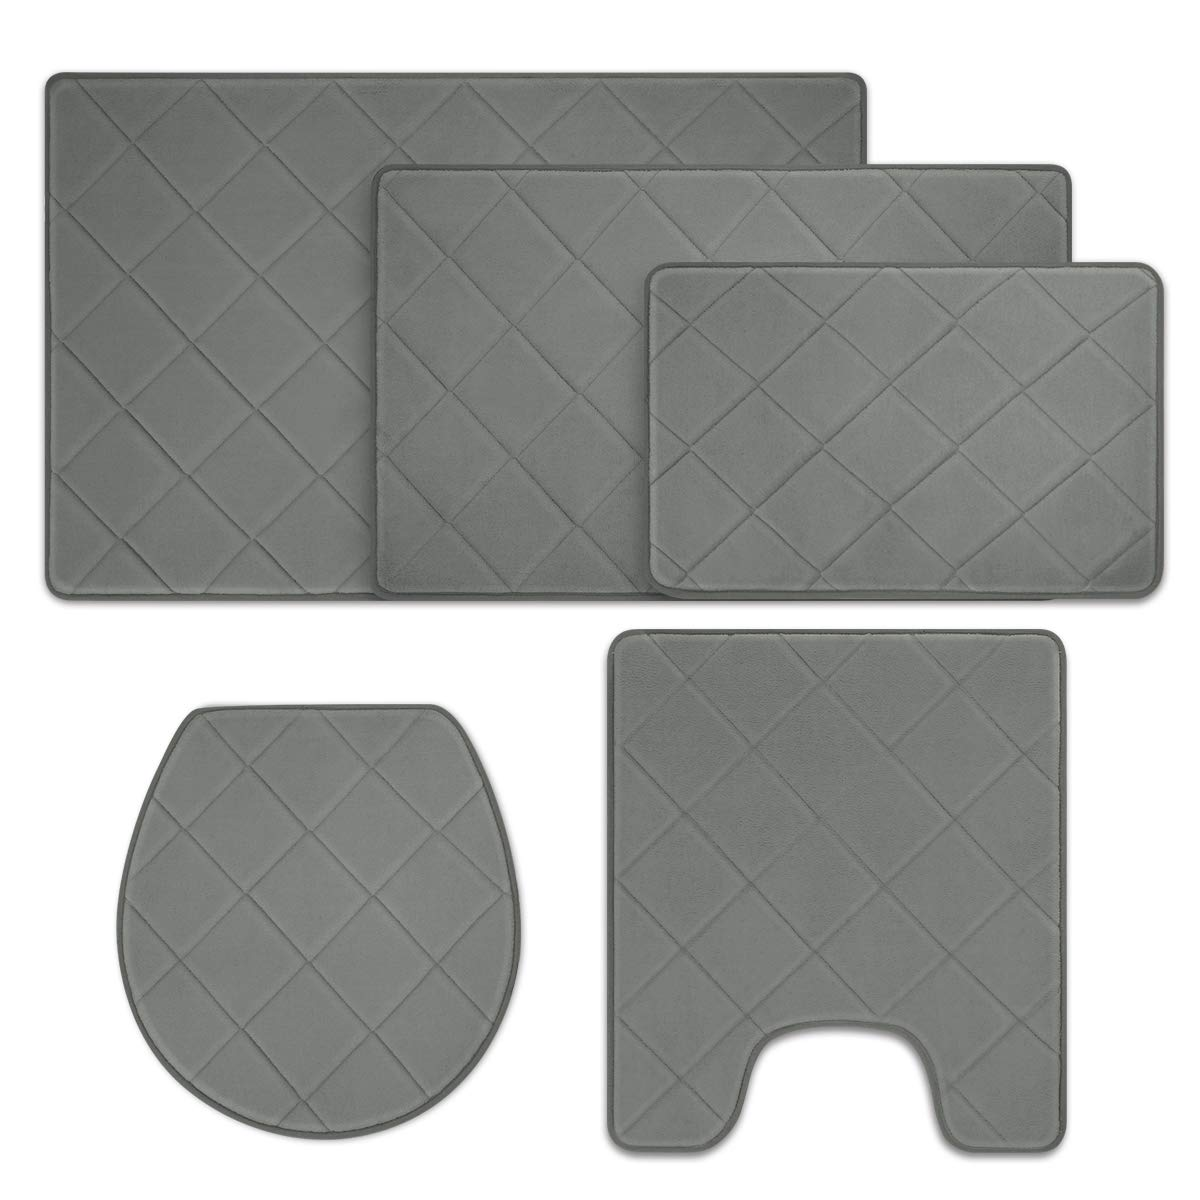 HOMEIDEAS 5 Pieces Bathroom Rugs Set, Non-Slip Bath Rugs Soft & Absorbent Velvet Microfiber Memory Foam Bath Mats Set, Perfect for Bathroom/Shower, Washable Quickly Drying Bathroom Mats Gray